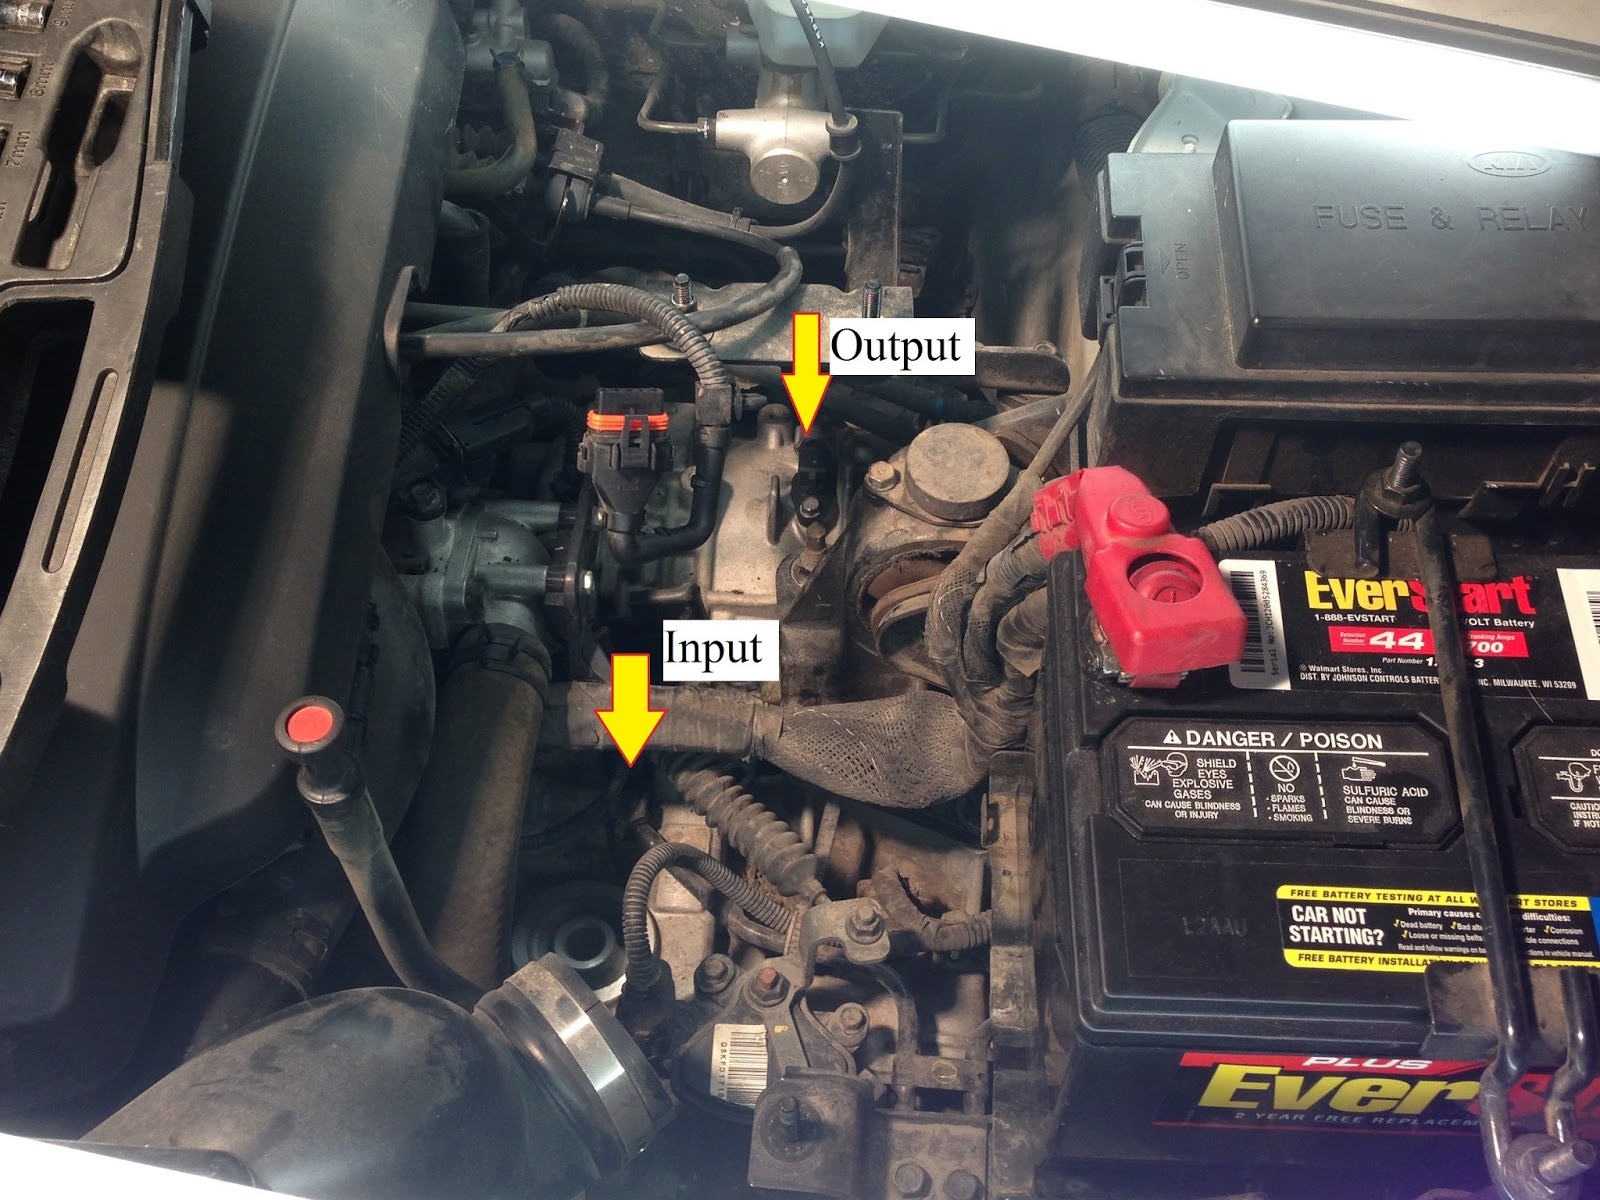 medium resolution of 6 before taking out the sensor i would make the suggestion to clean out the part of your engine compartment where the sensors are